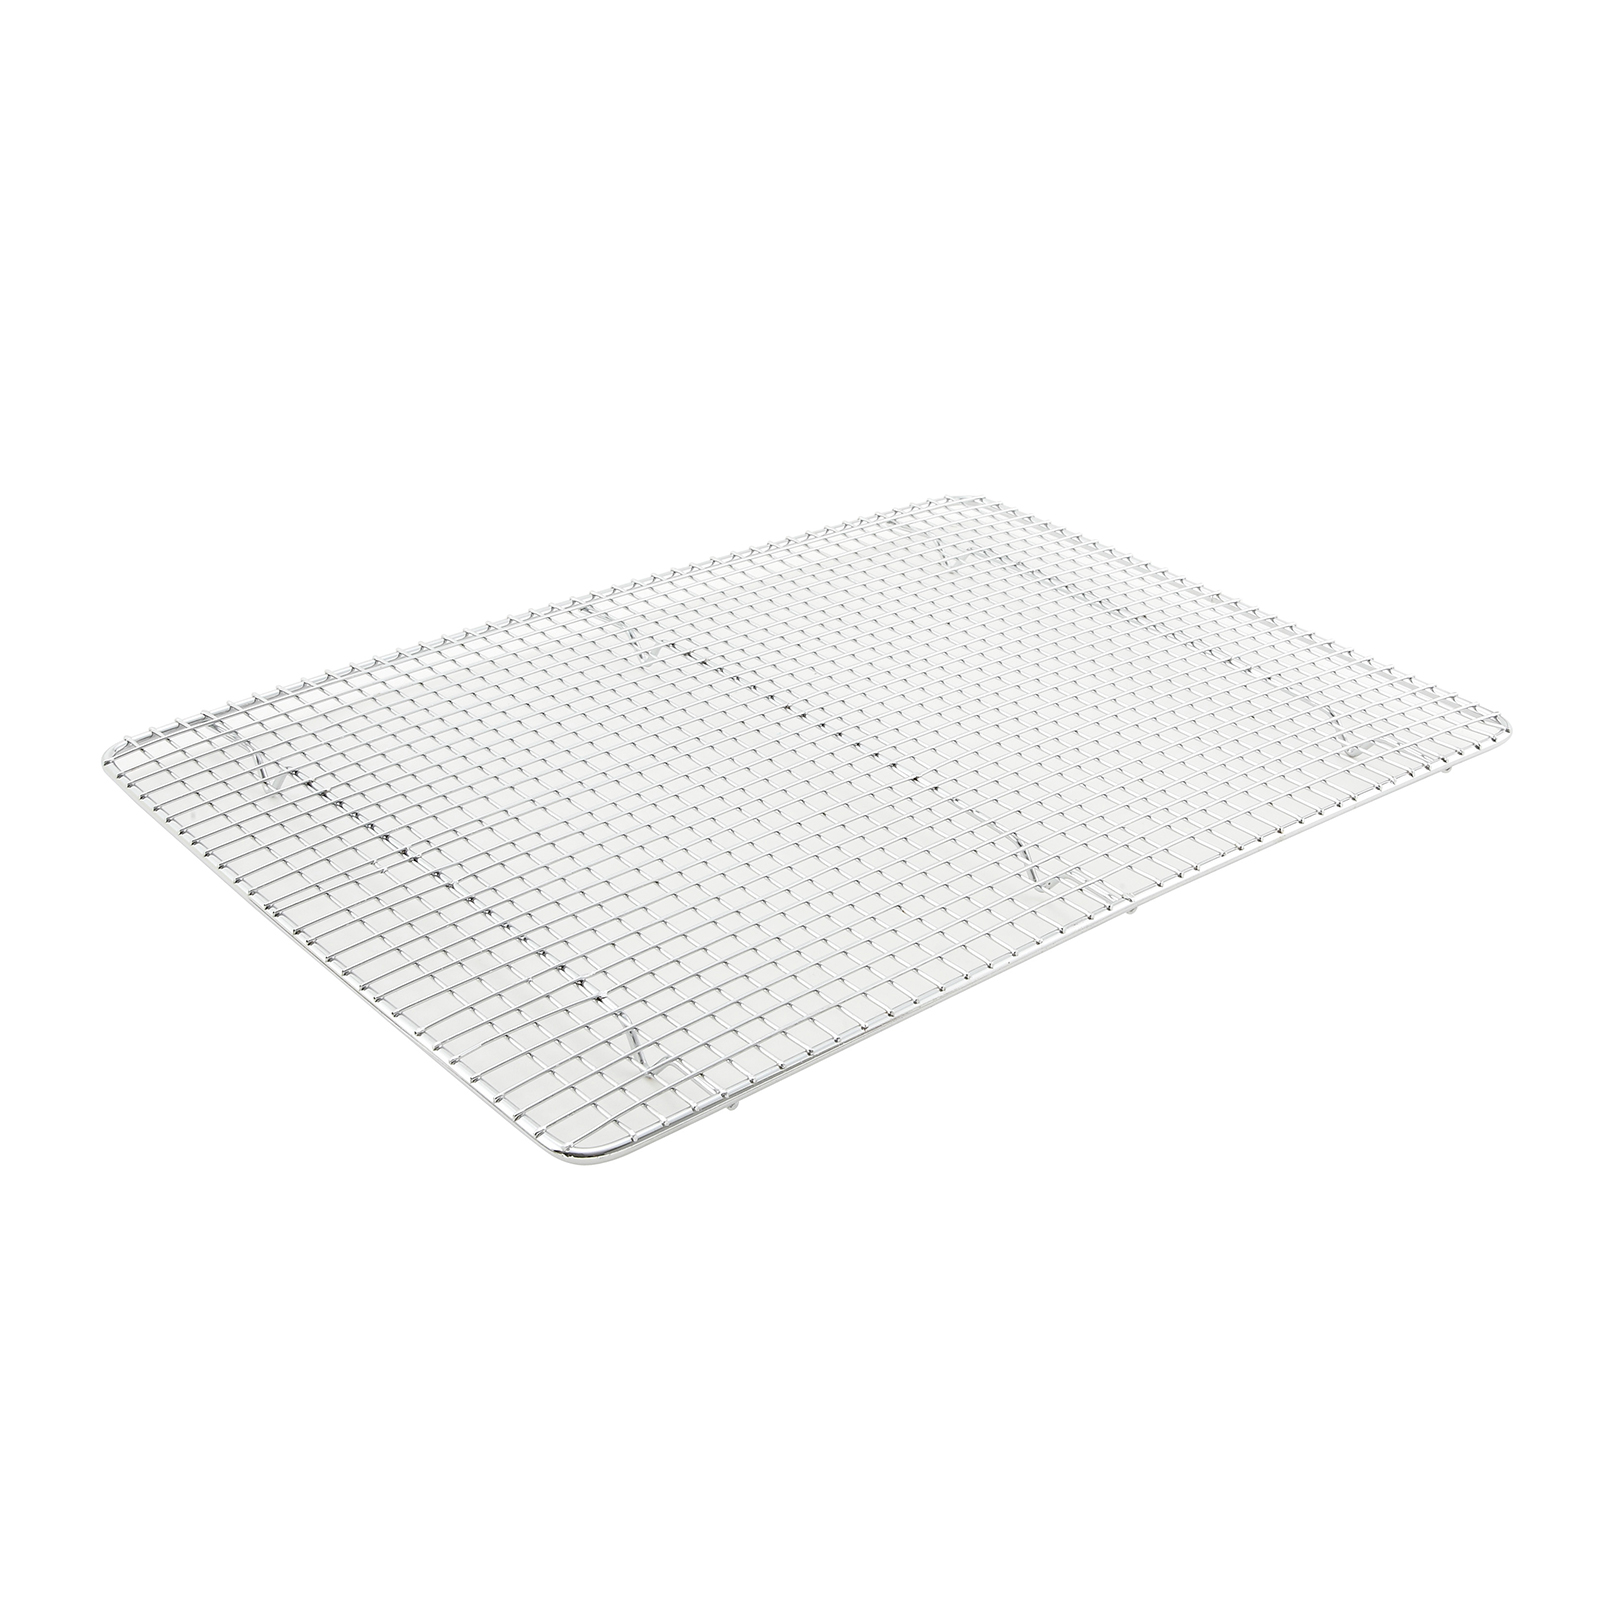 2400-0111 Winco PGW-1216 wire pan rack / grate